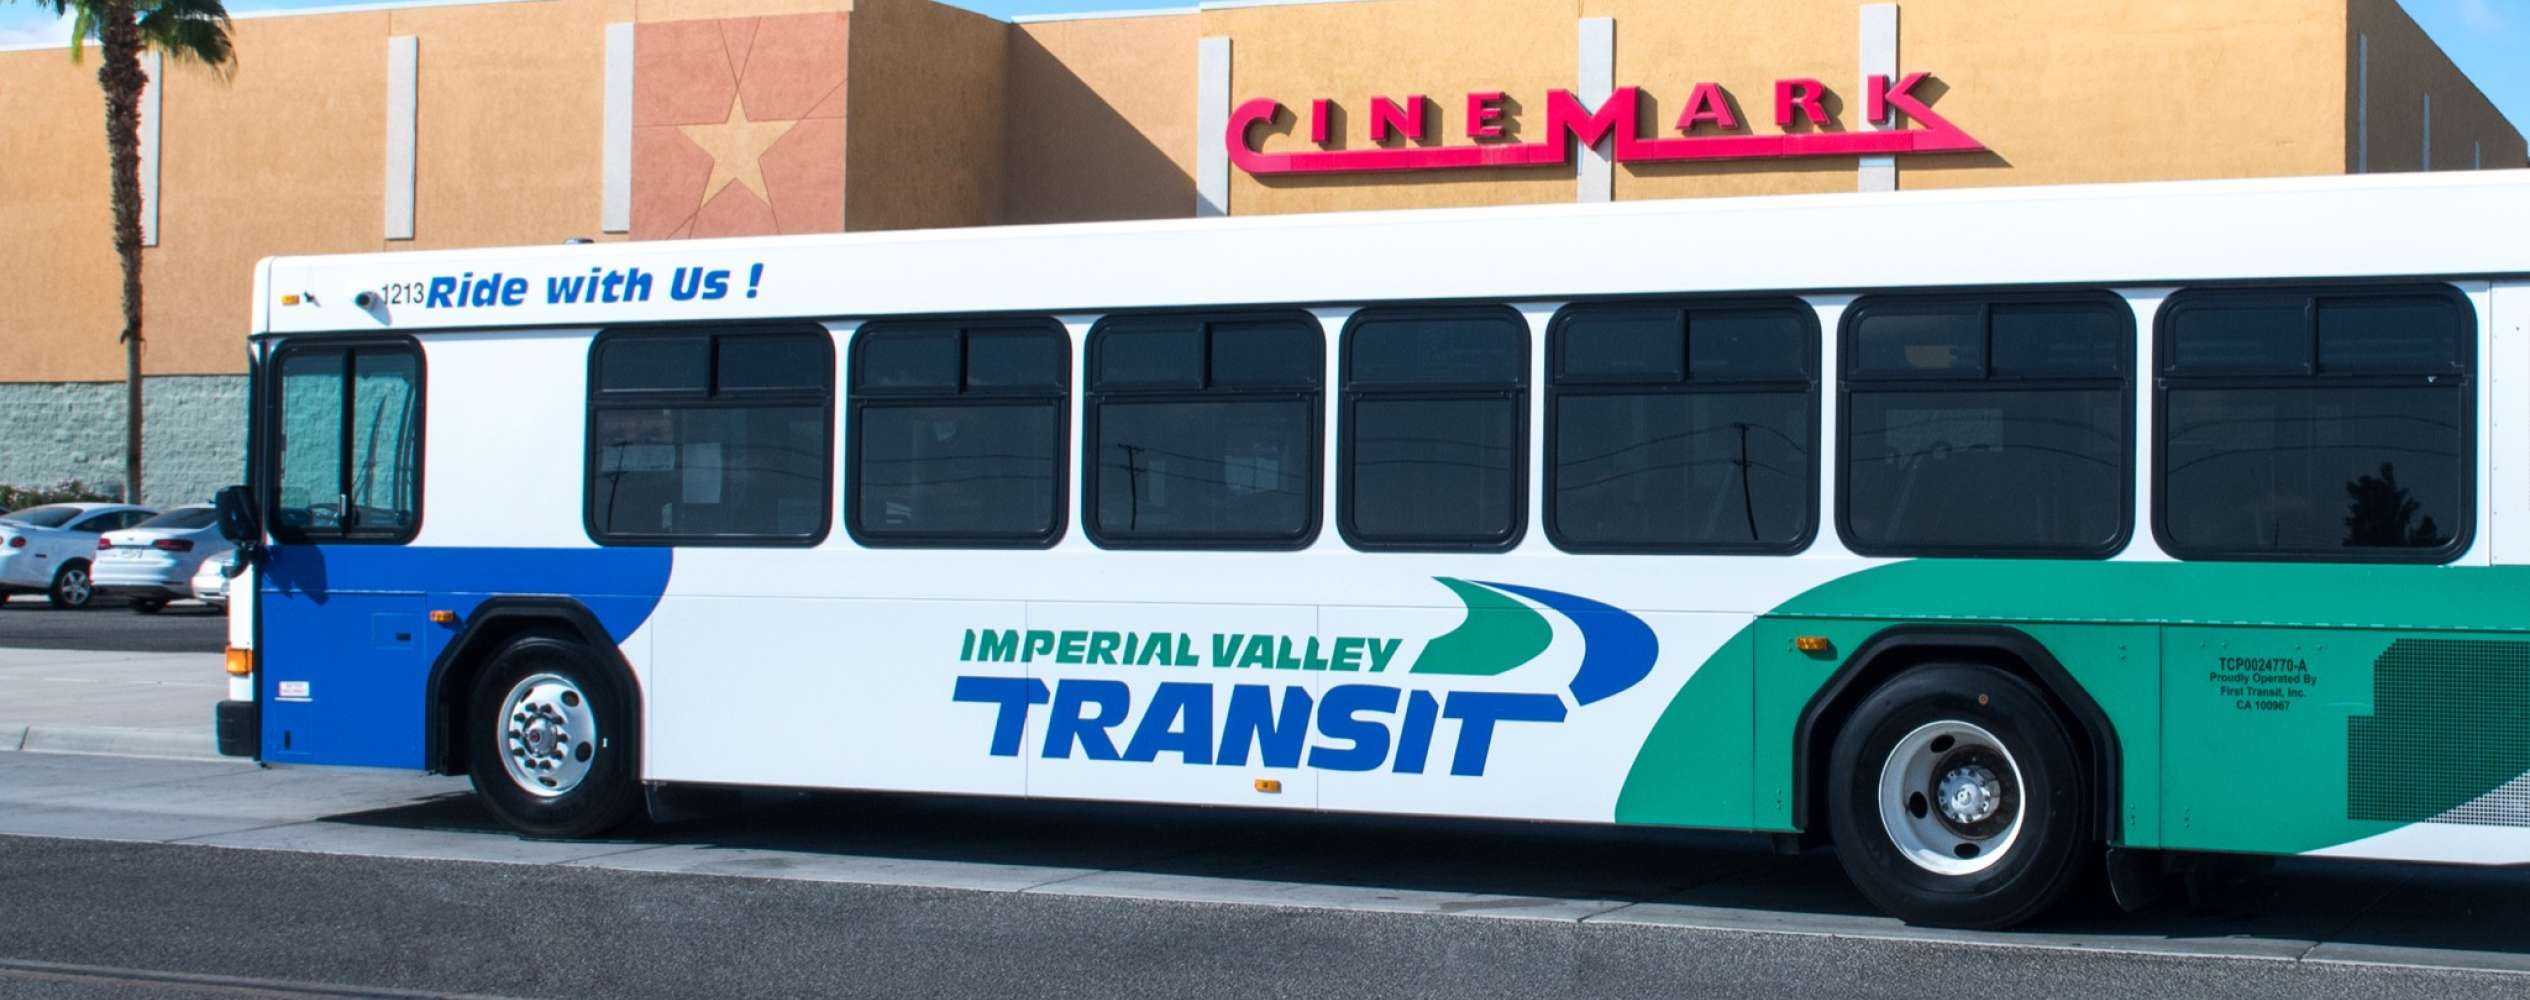 IV Mall, Cinemark can be seen behind bus